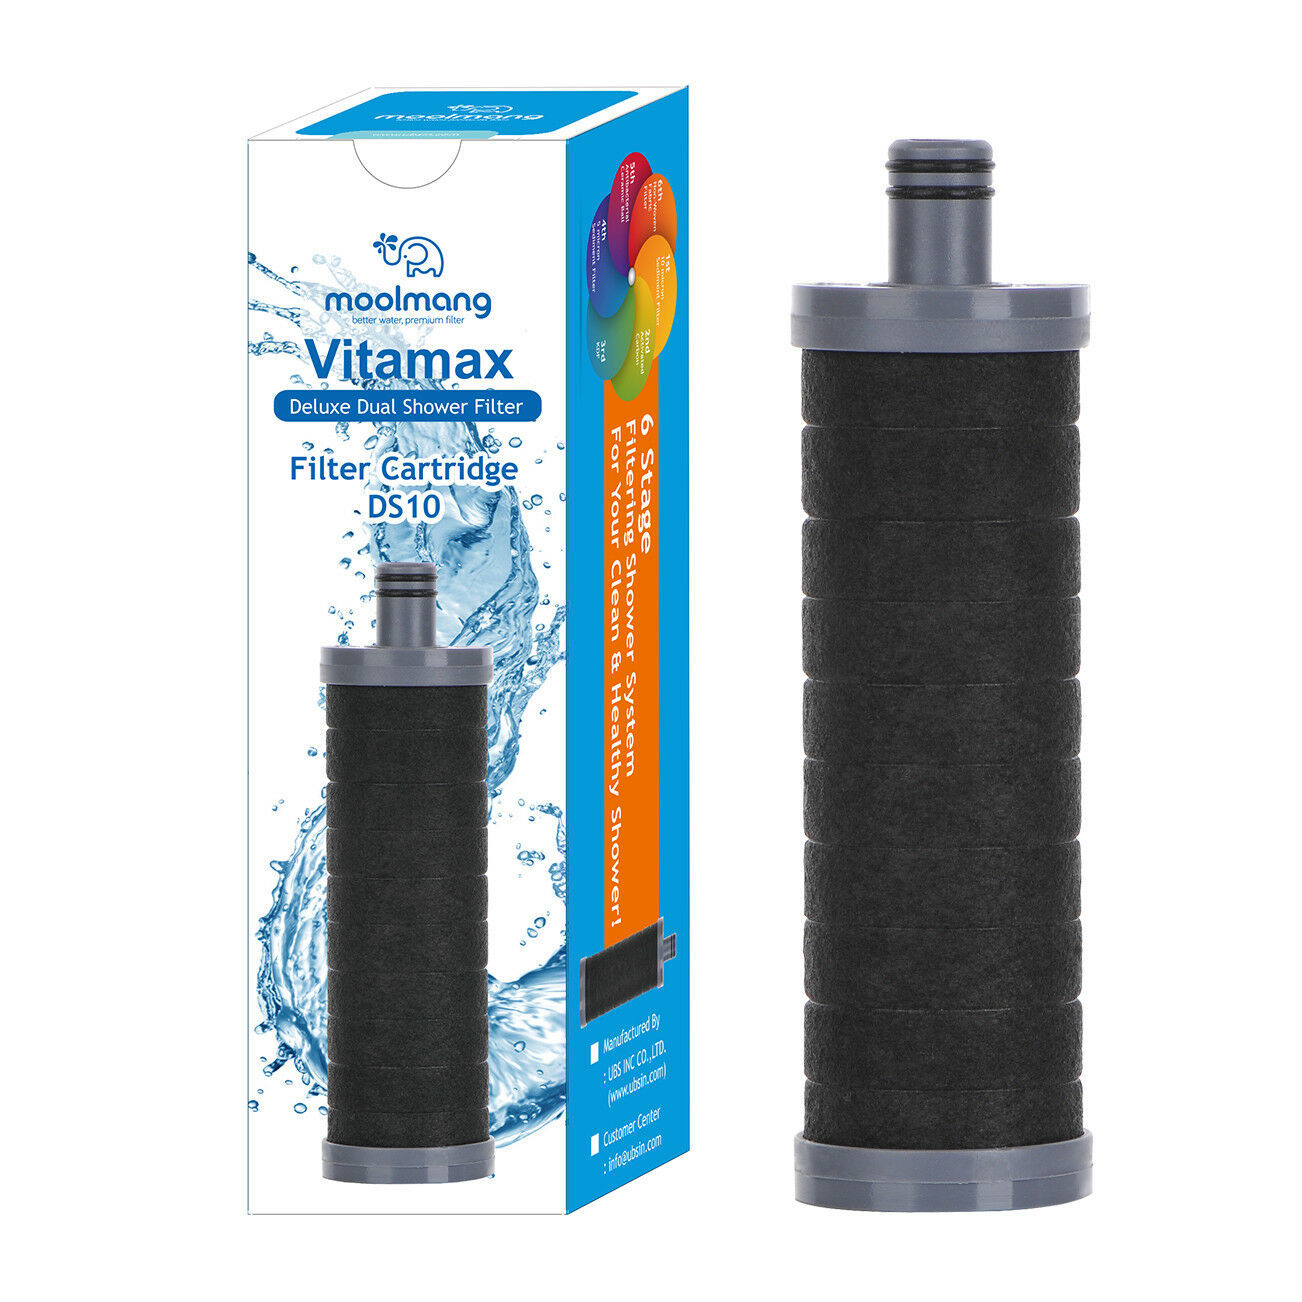 Replacement-Filter-Cartridge-for-Moolmang-Vitamax-Deluxe-Dual-Shower-Filter  Re